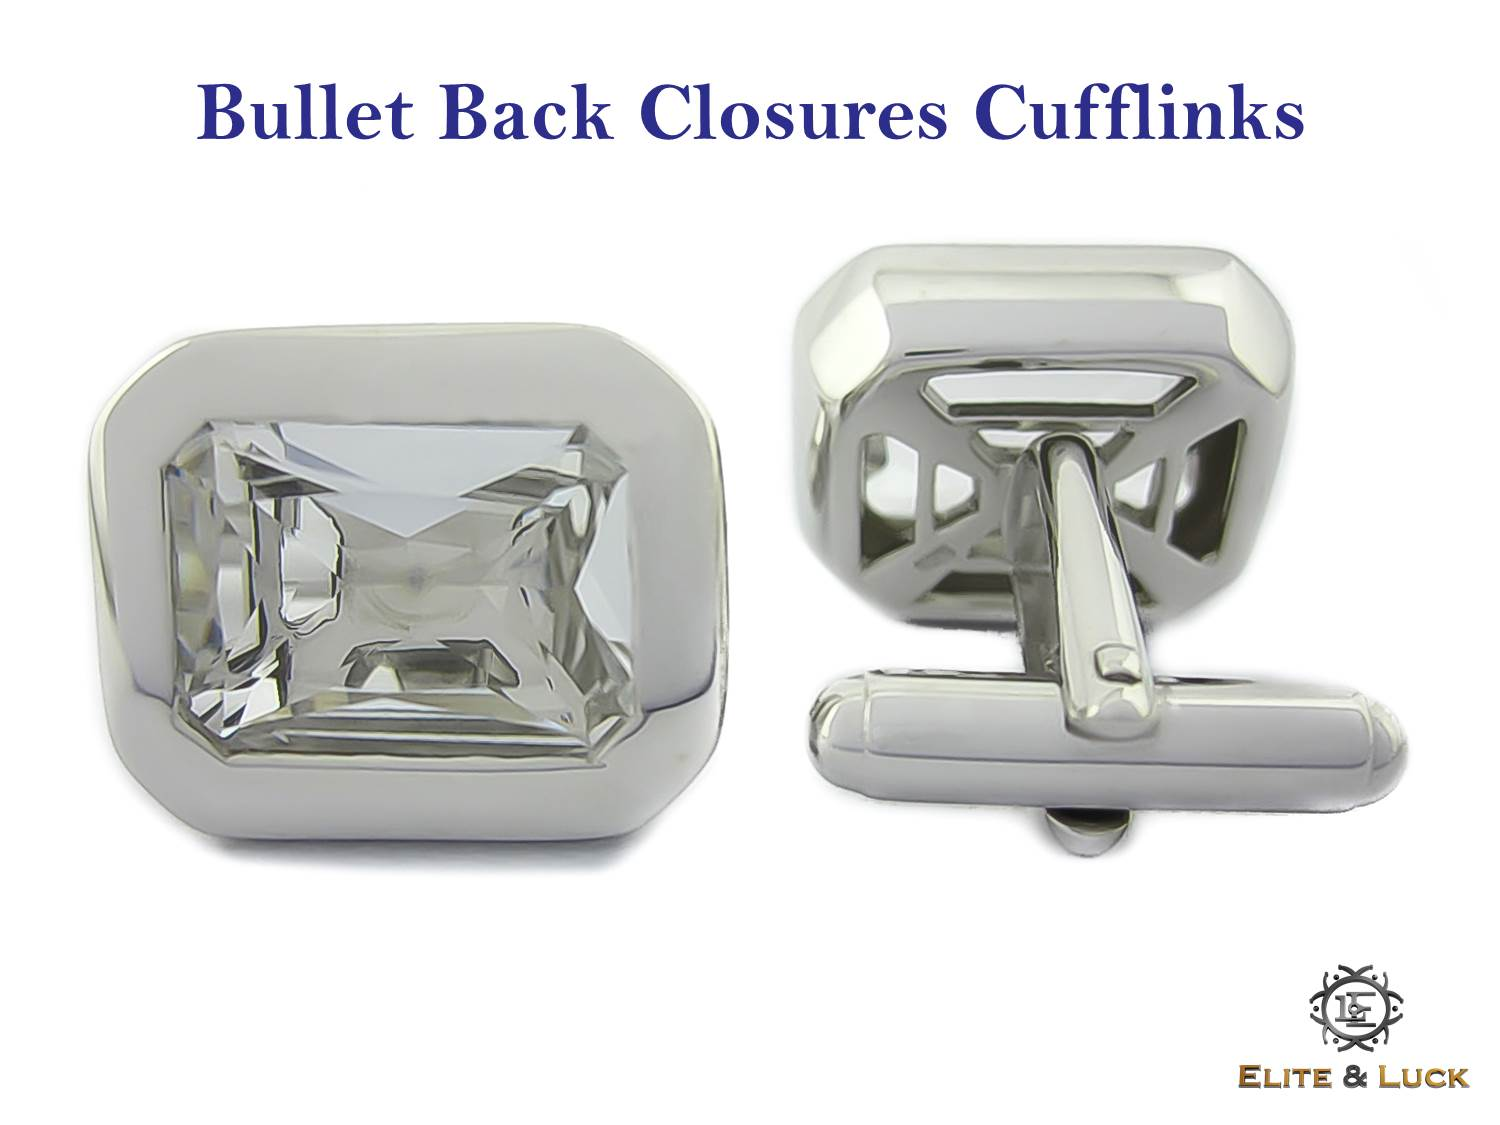 Bullet Back Closures Cufflinks